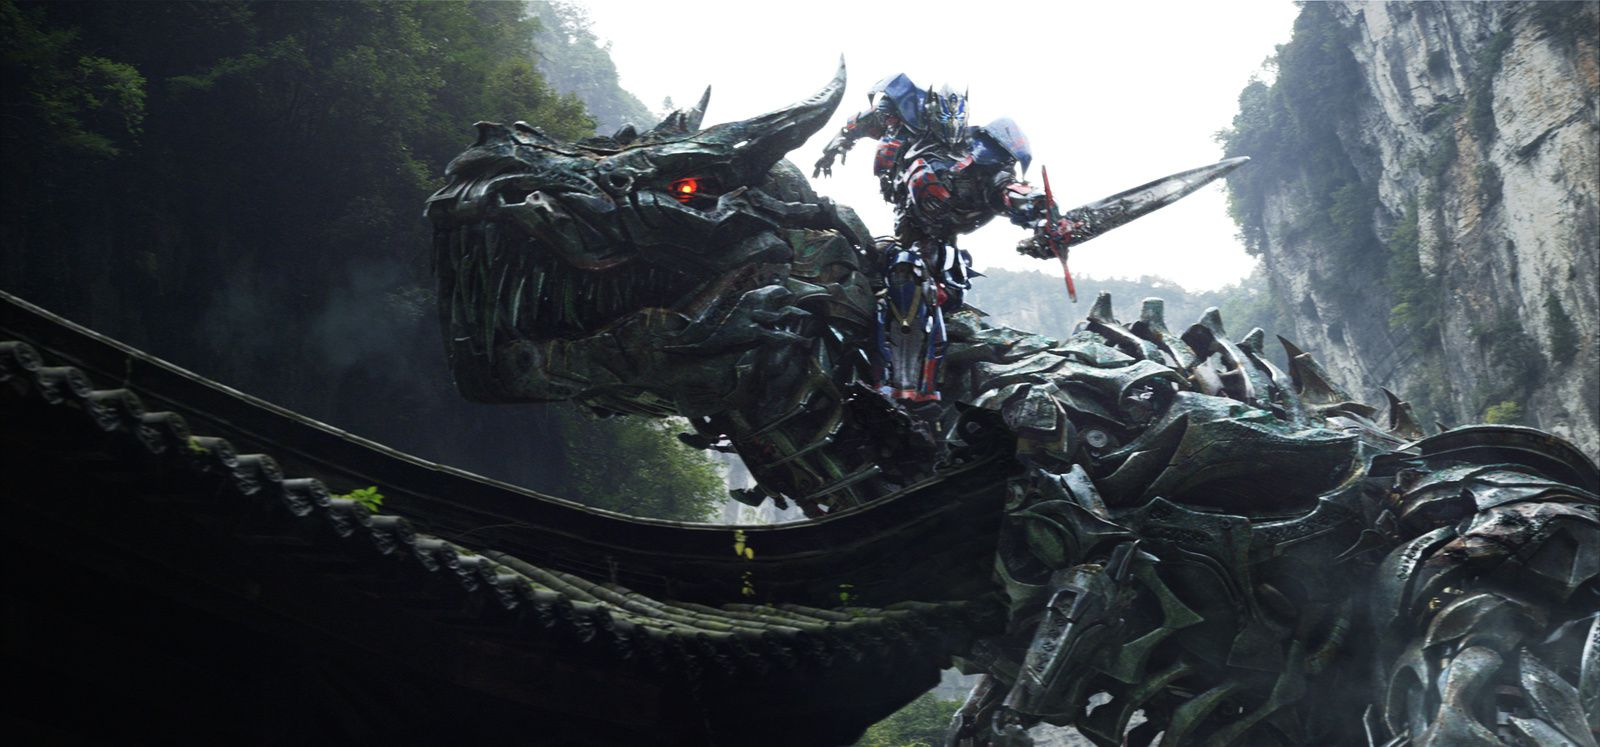 Le spot TV de Transformers 4 : l'âge de l'extinction